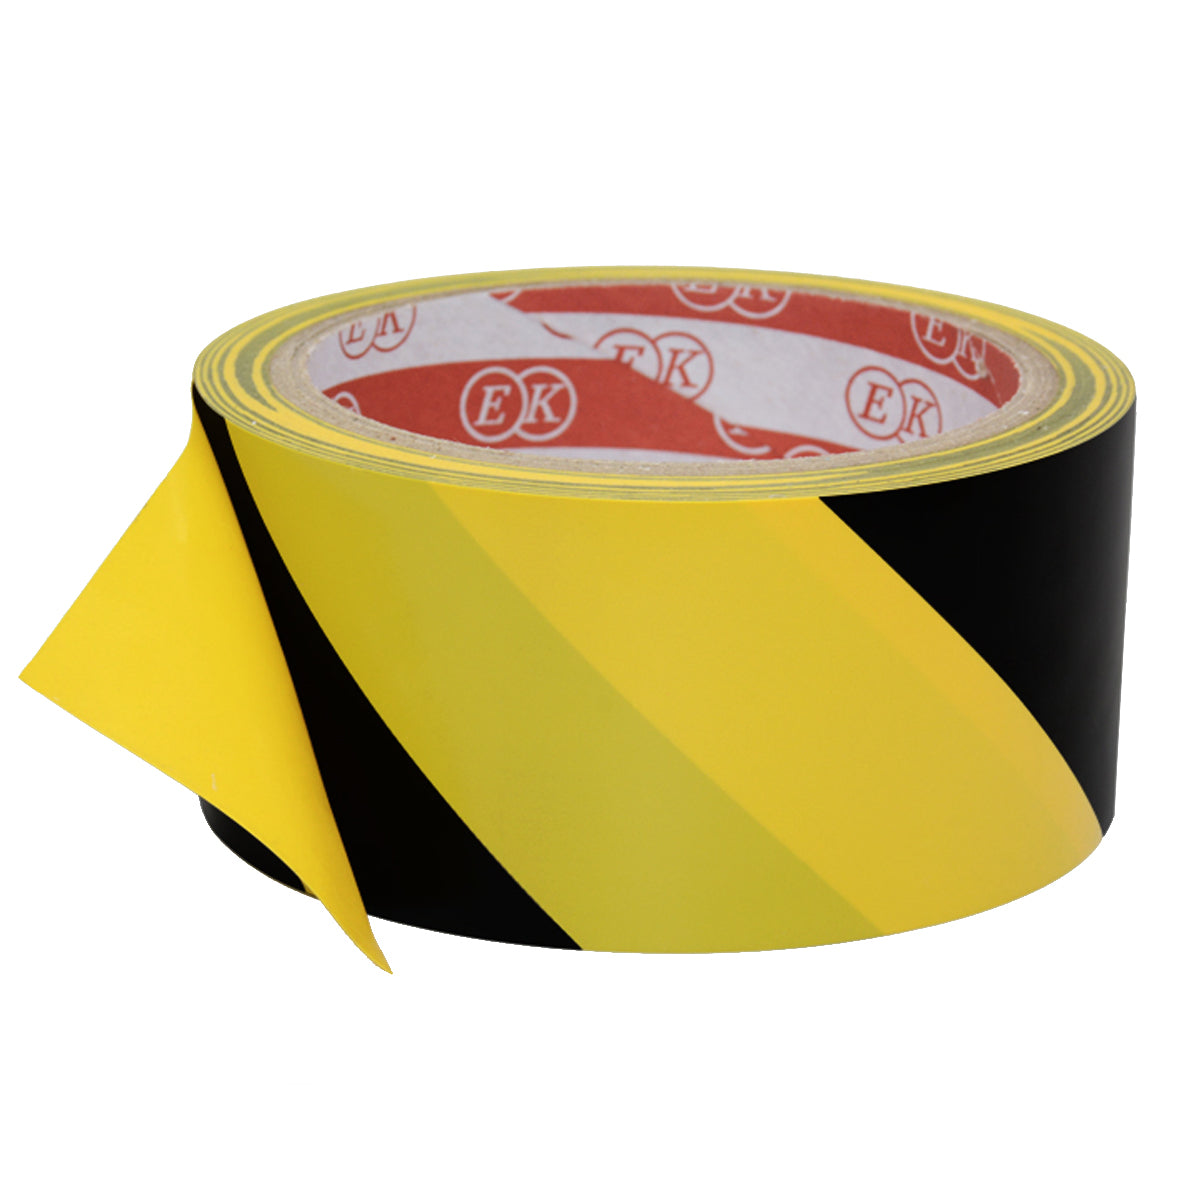 High Strength Adhesive Single-Sided Black and Yellow Standard Hazard Safety Warning Floor Tape for Social Distance, Strong and Water Resistant Tape (4.5cm x 17 meters)